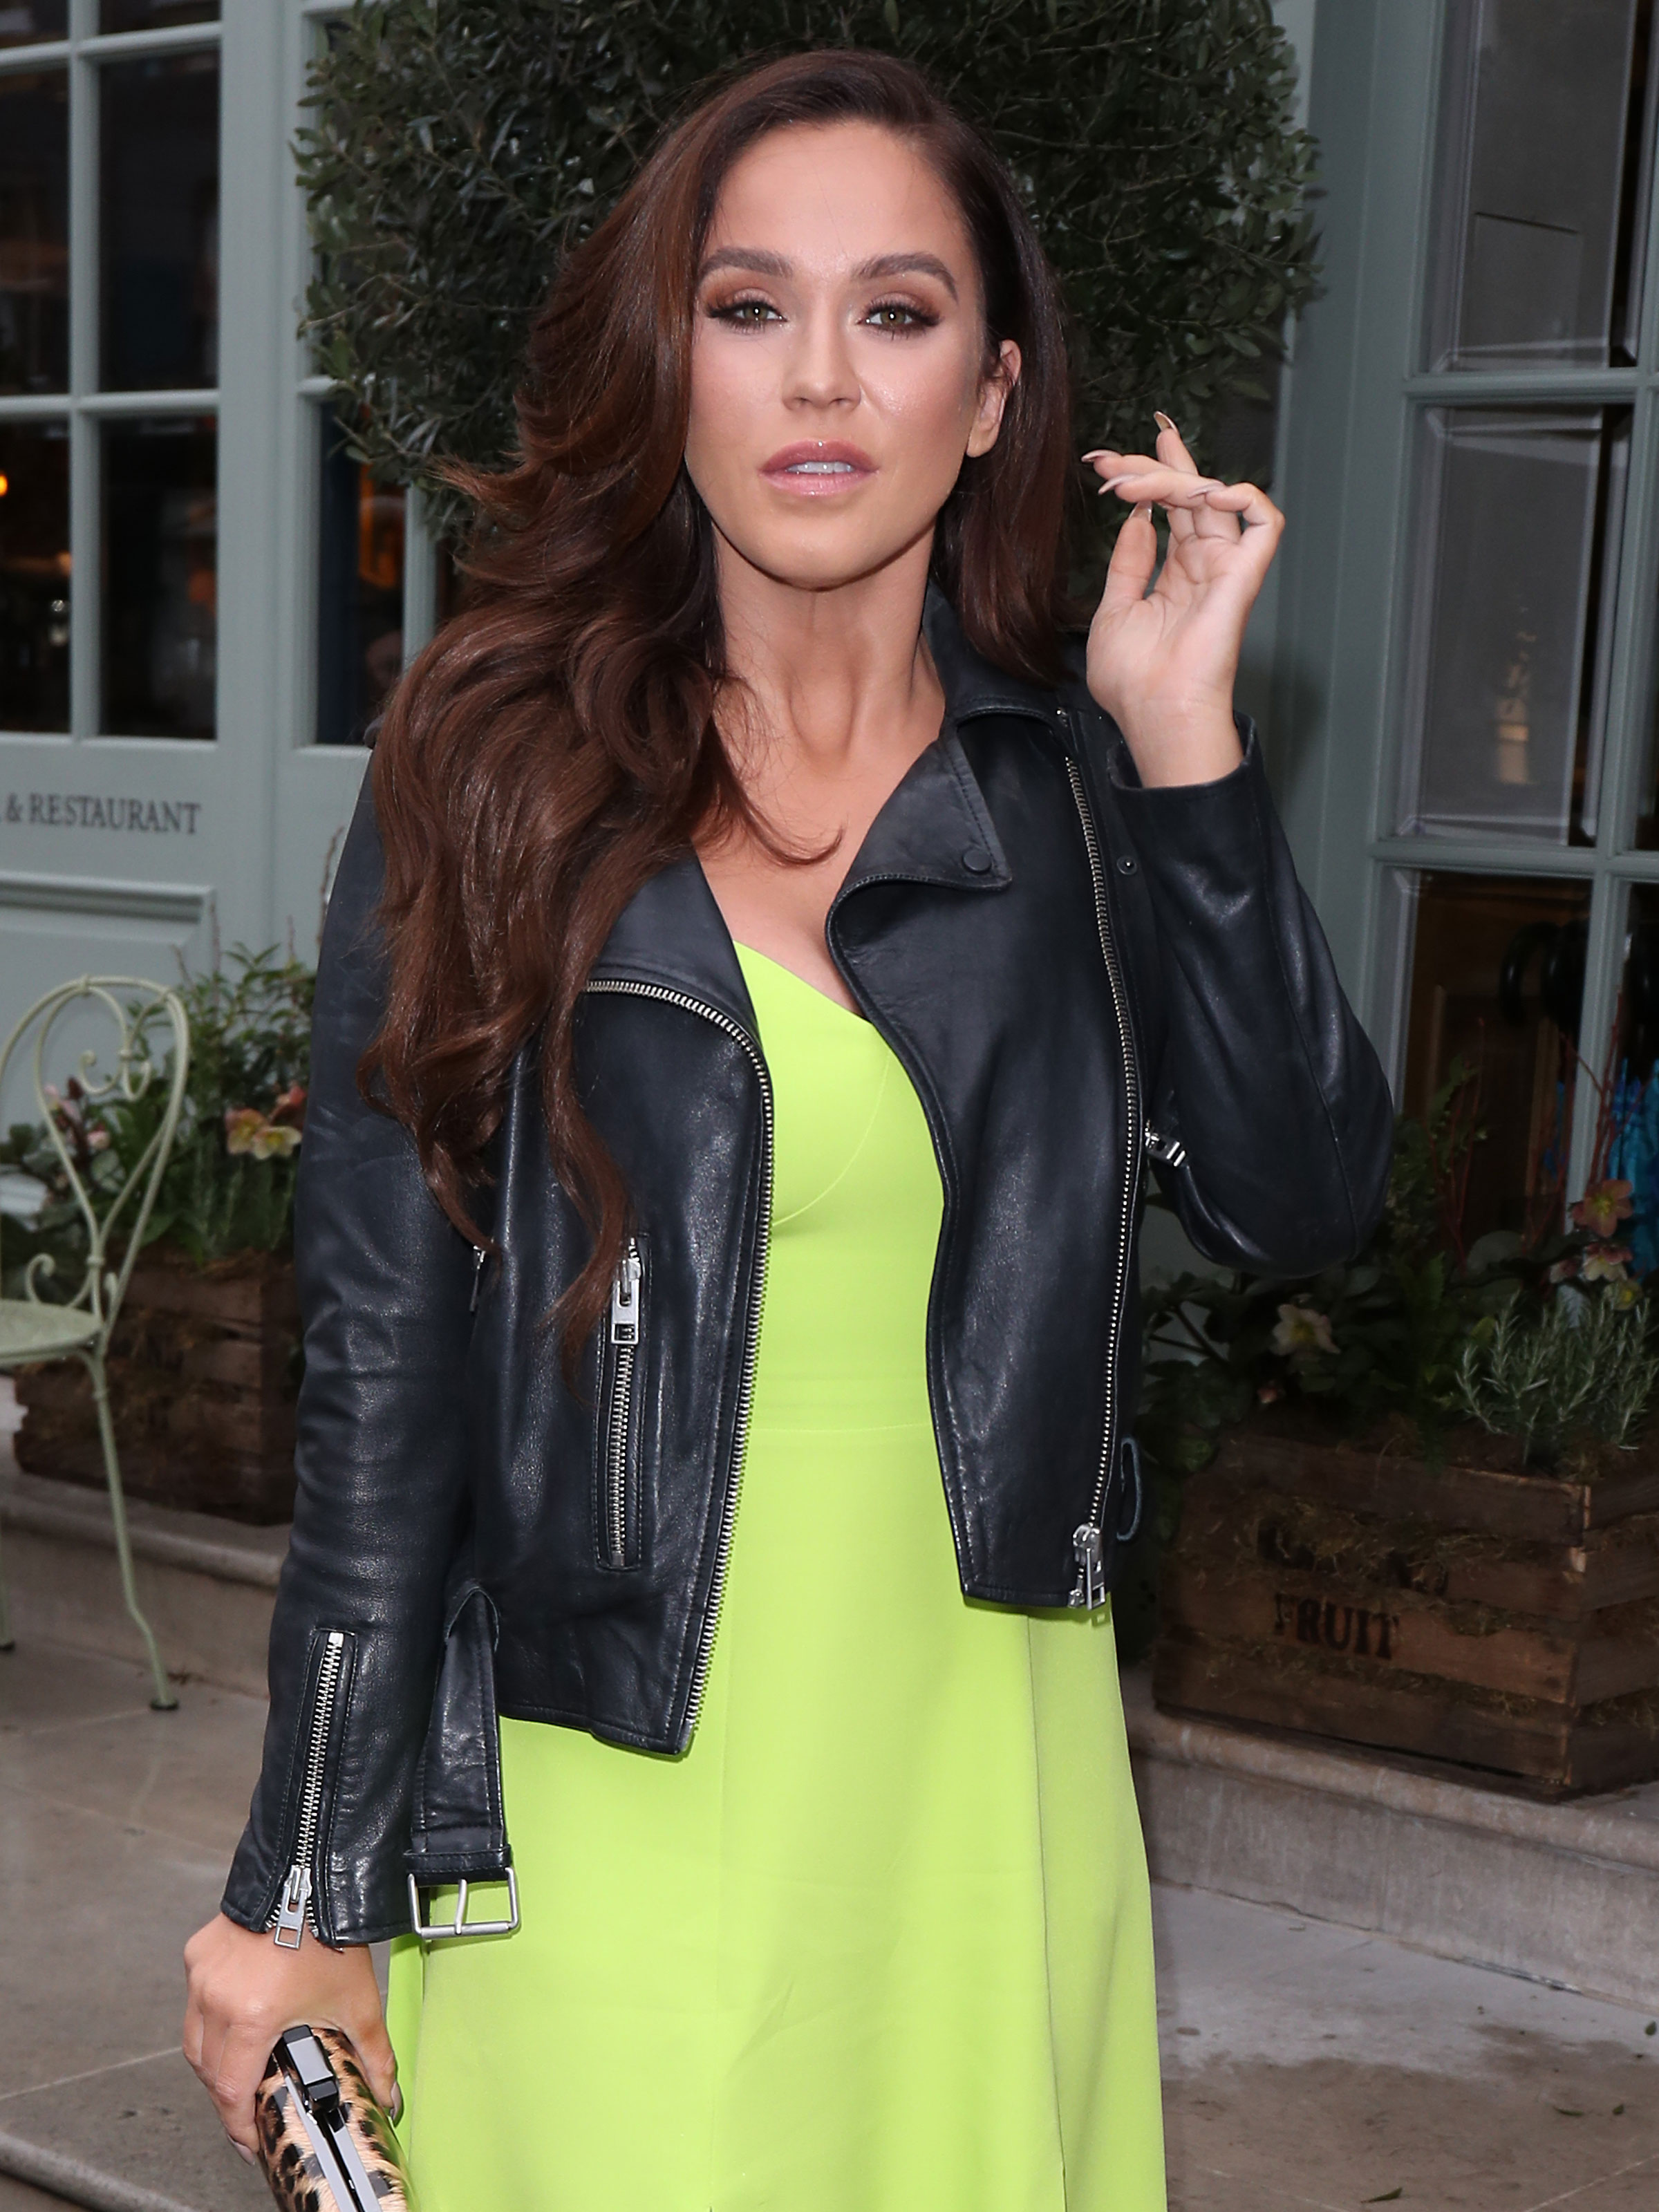 Vicky Pattison 'sparks concern' as fan films her looking 'wasted' at airport